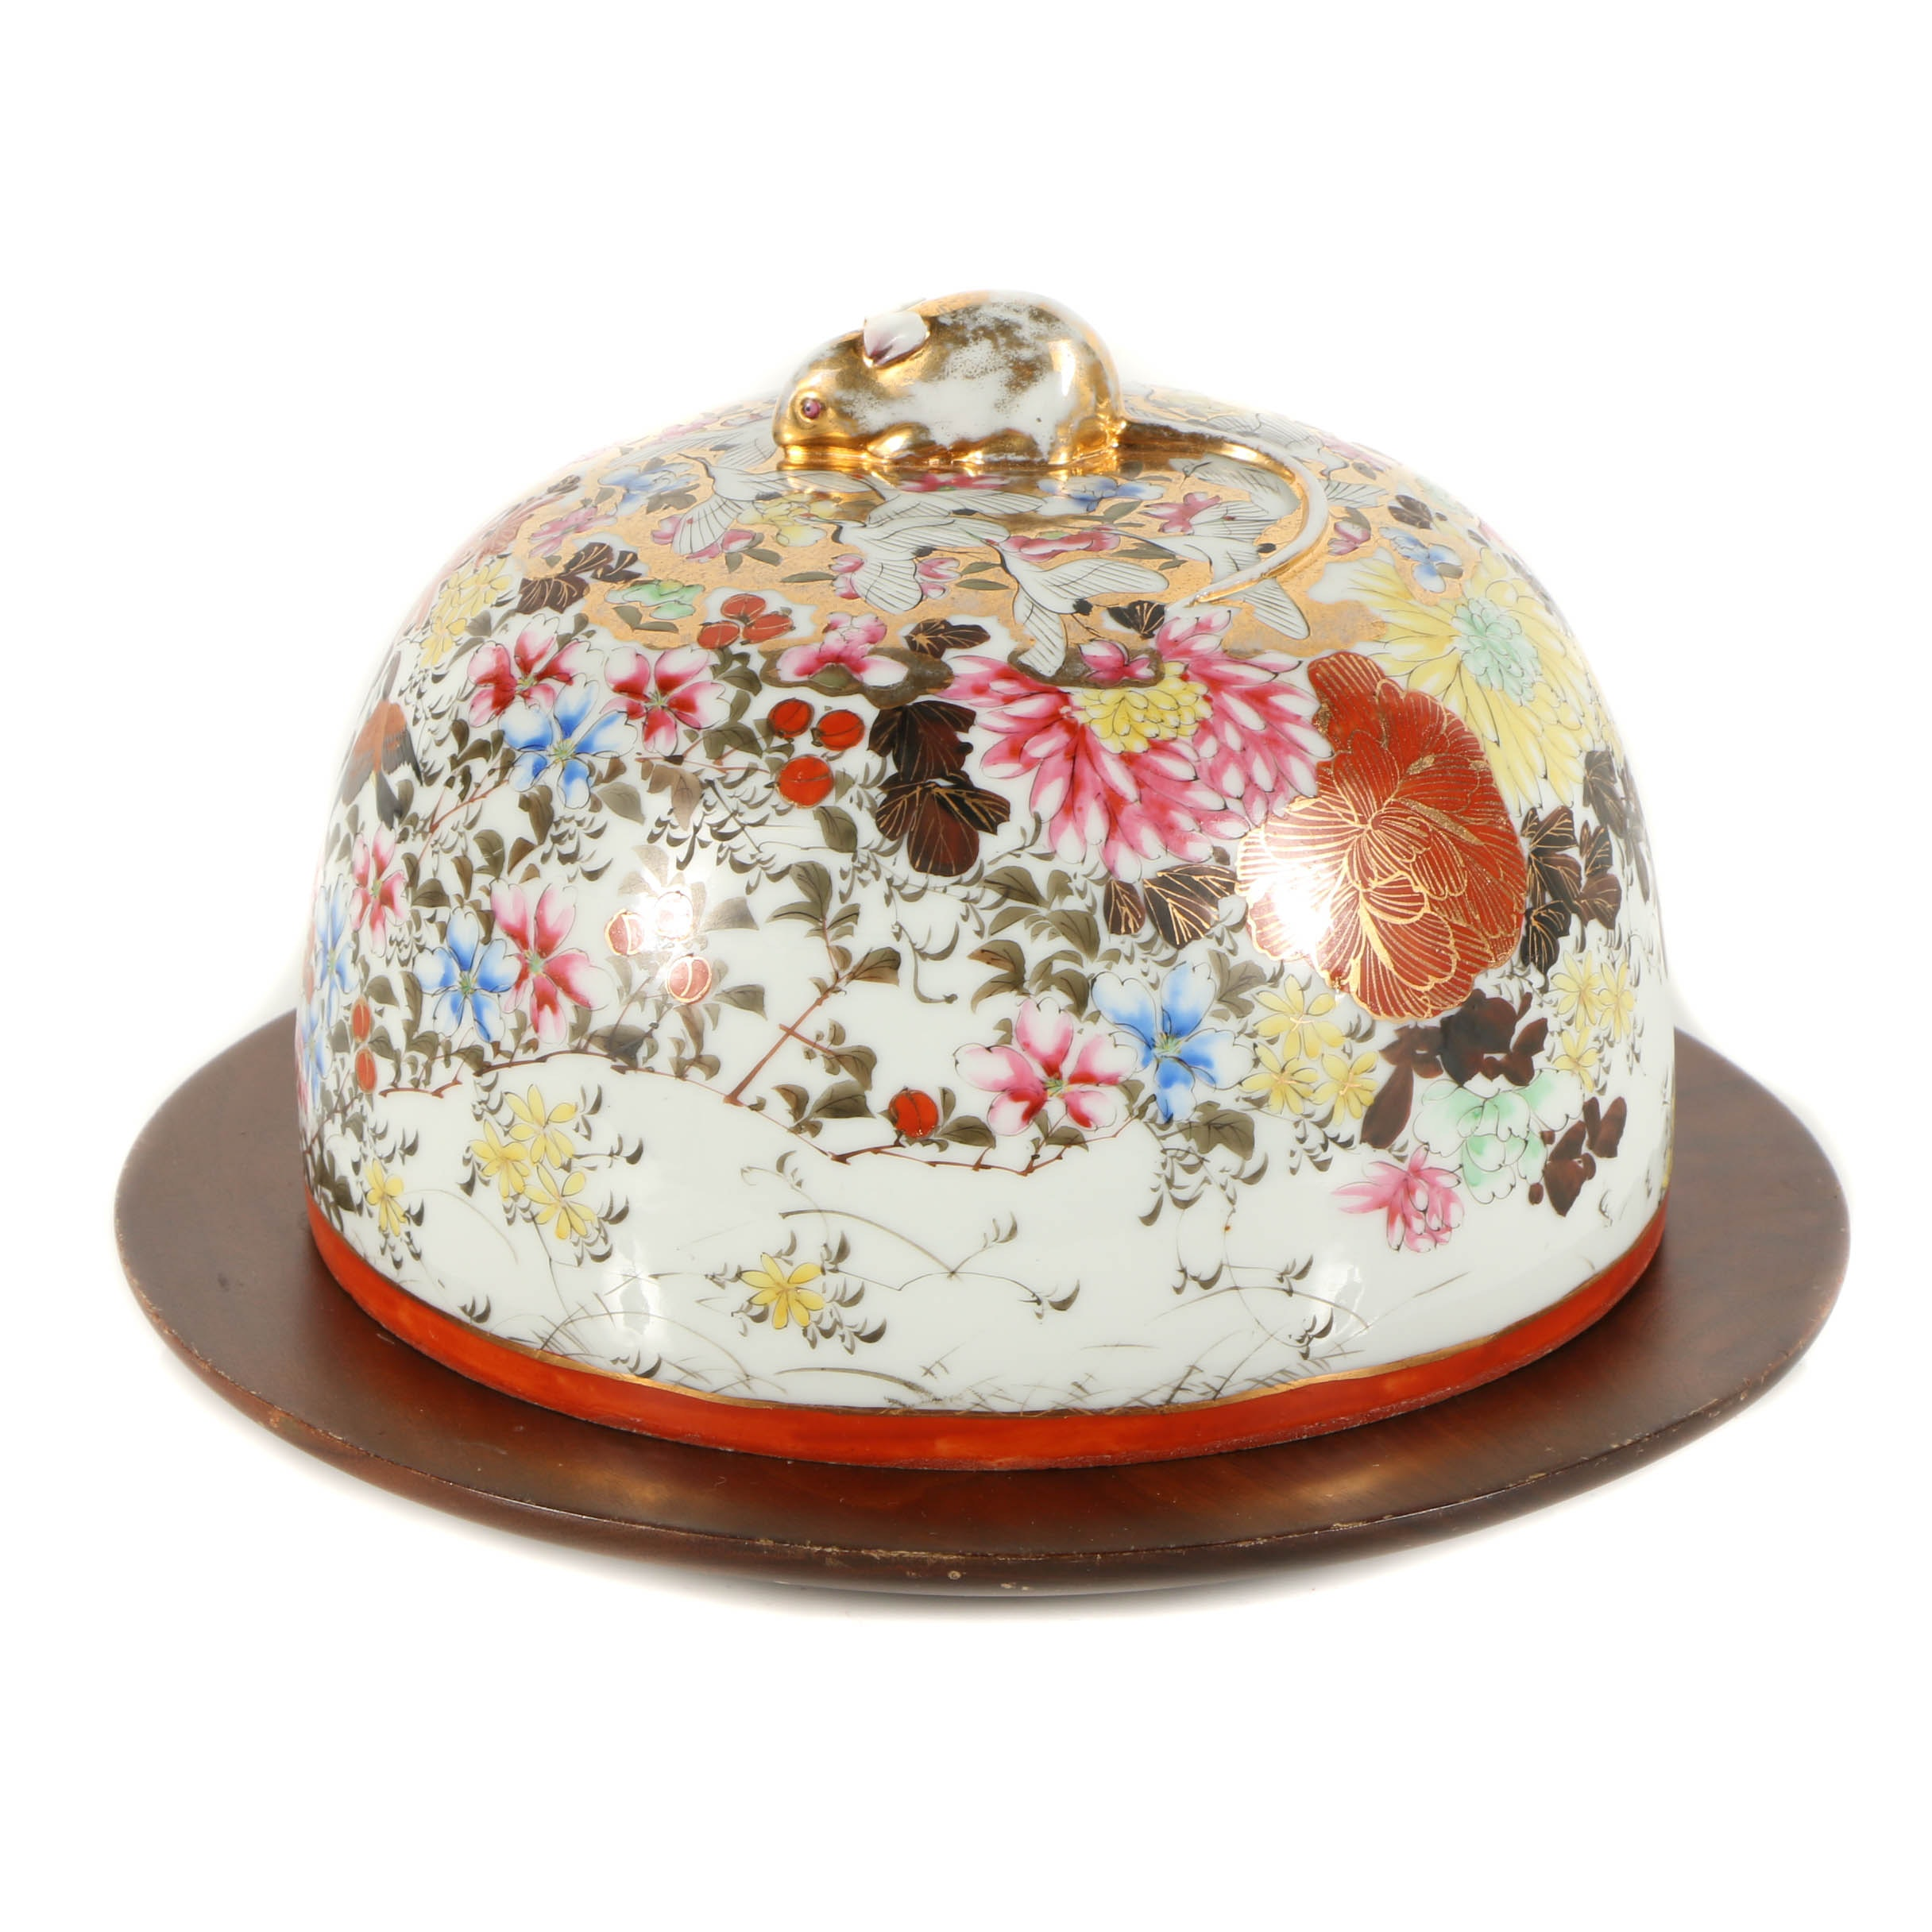 Japanese Porcelain Cloche with Wooden Base